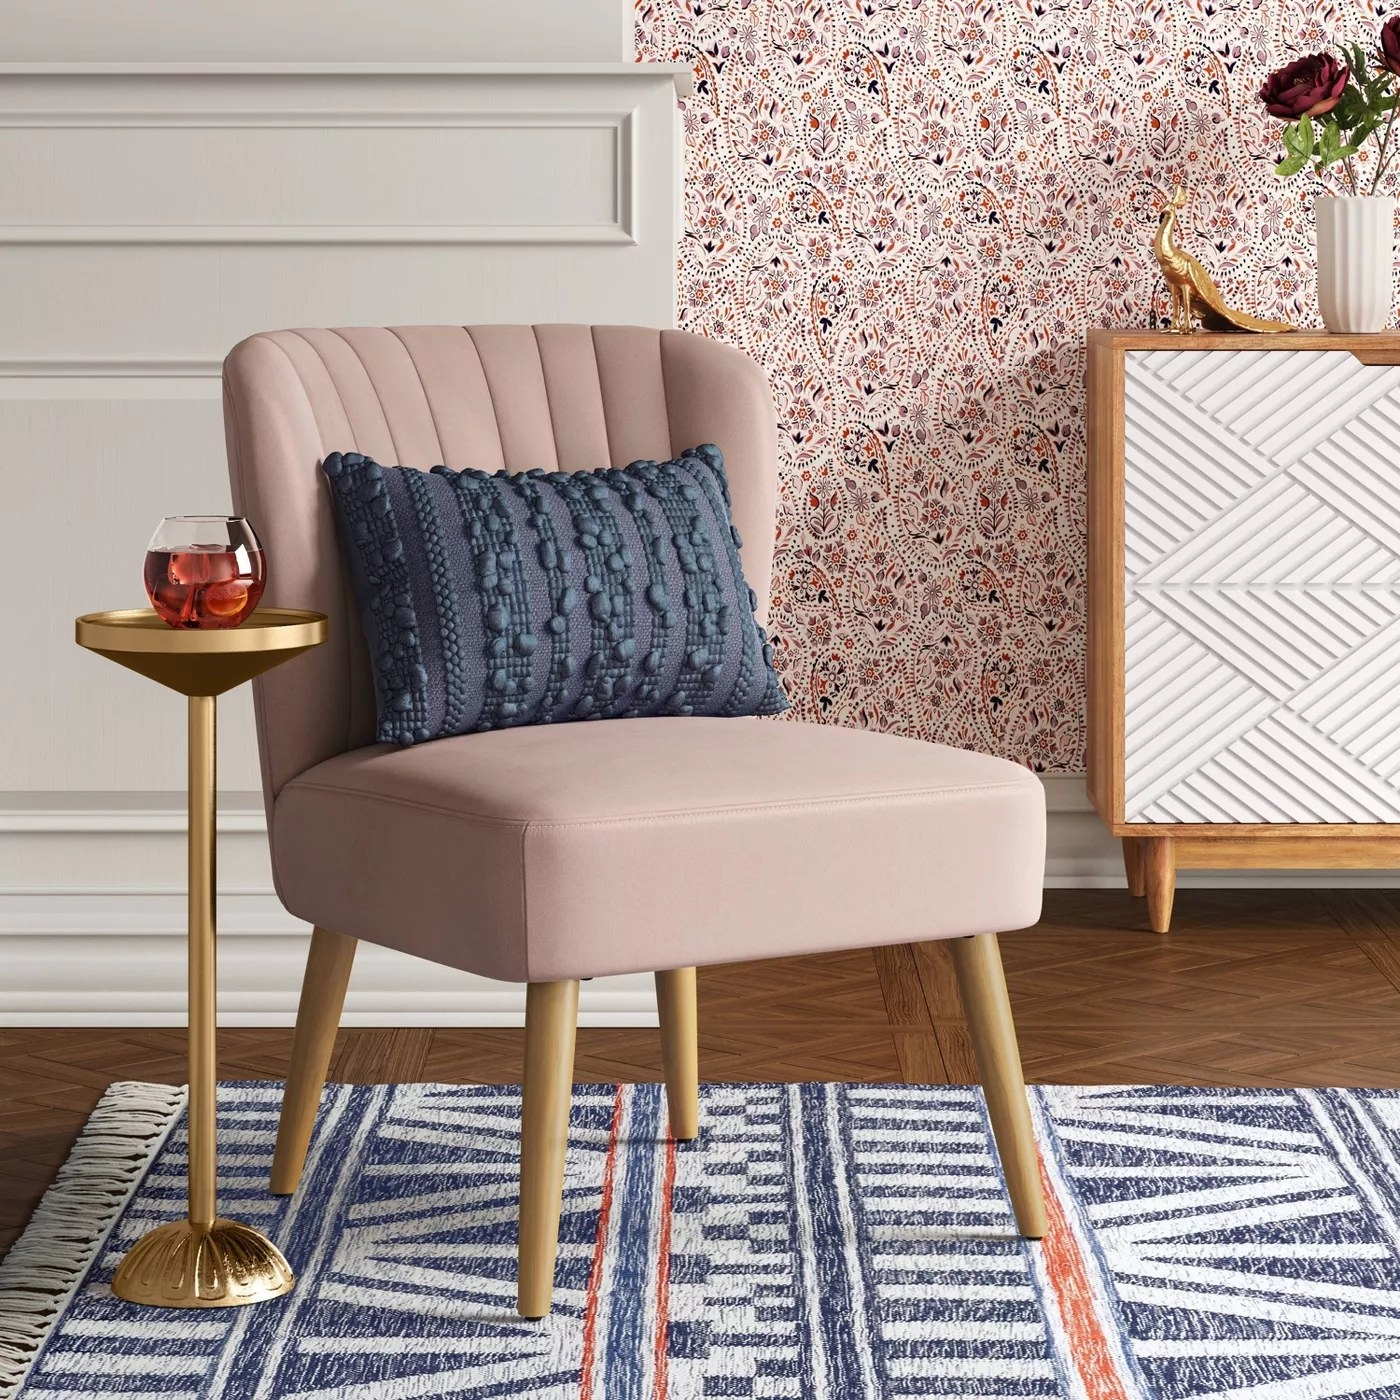 The accent chair